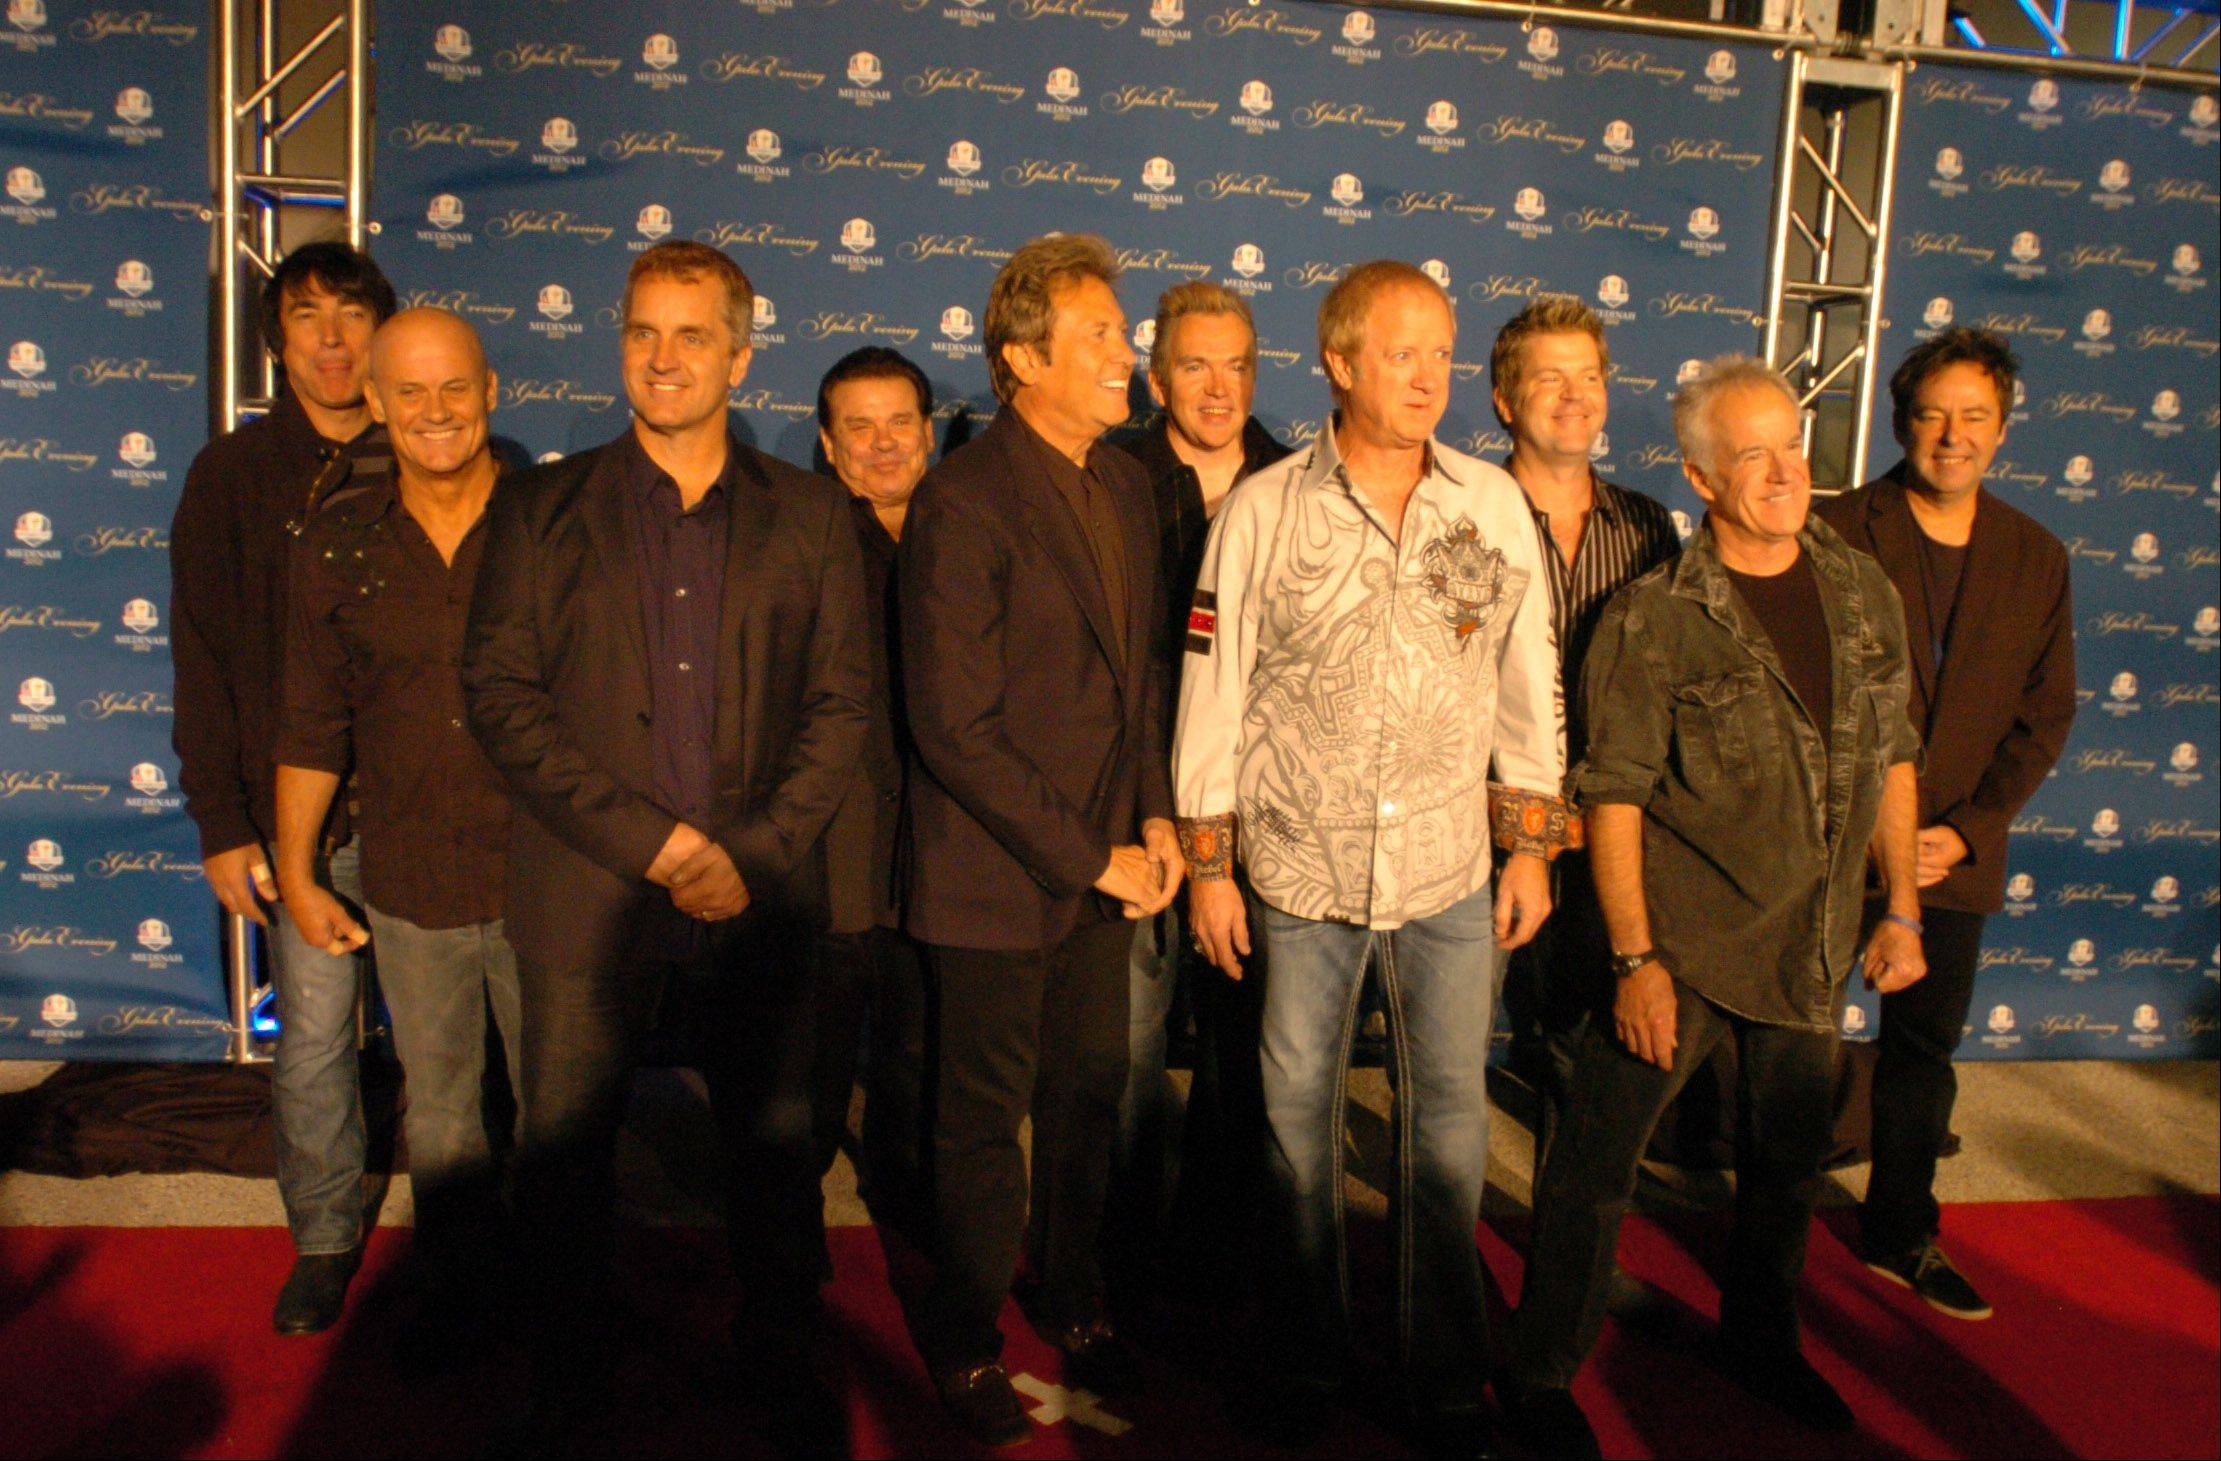 The band Chicago poses for photos on the red carpet.